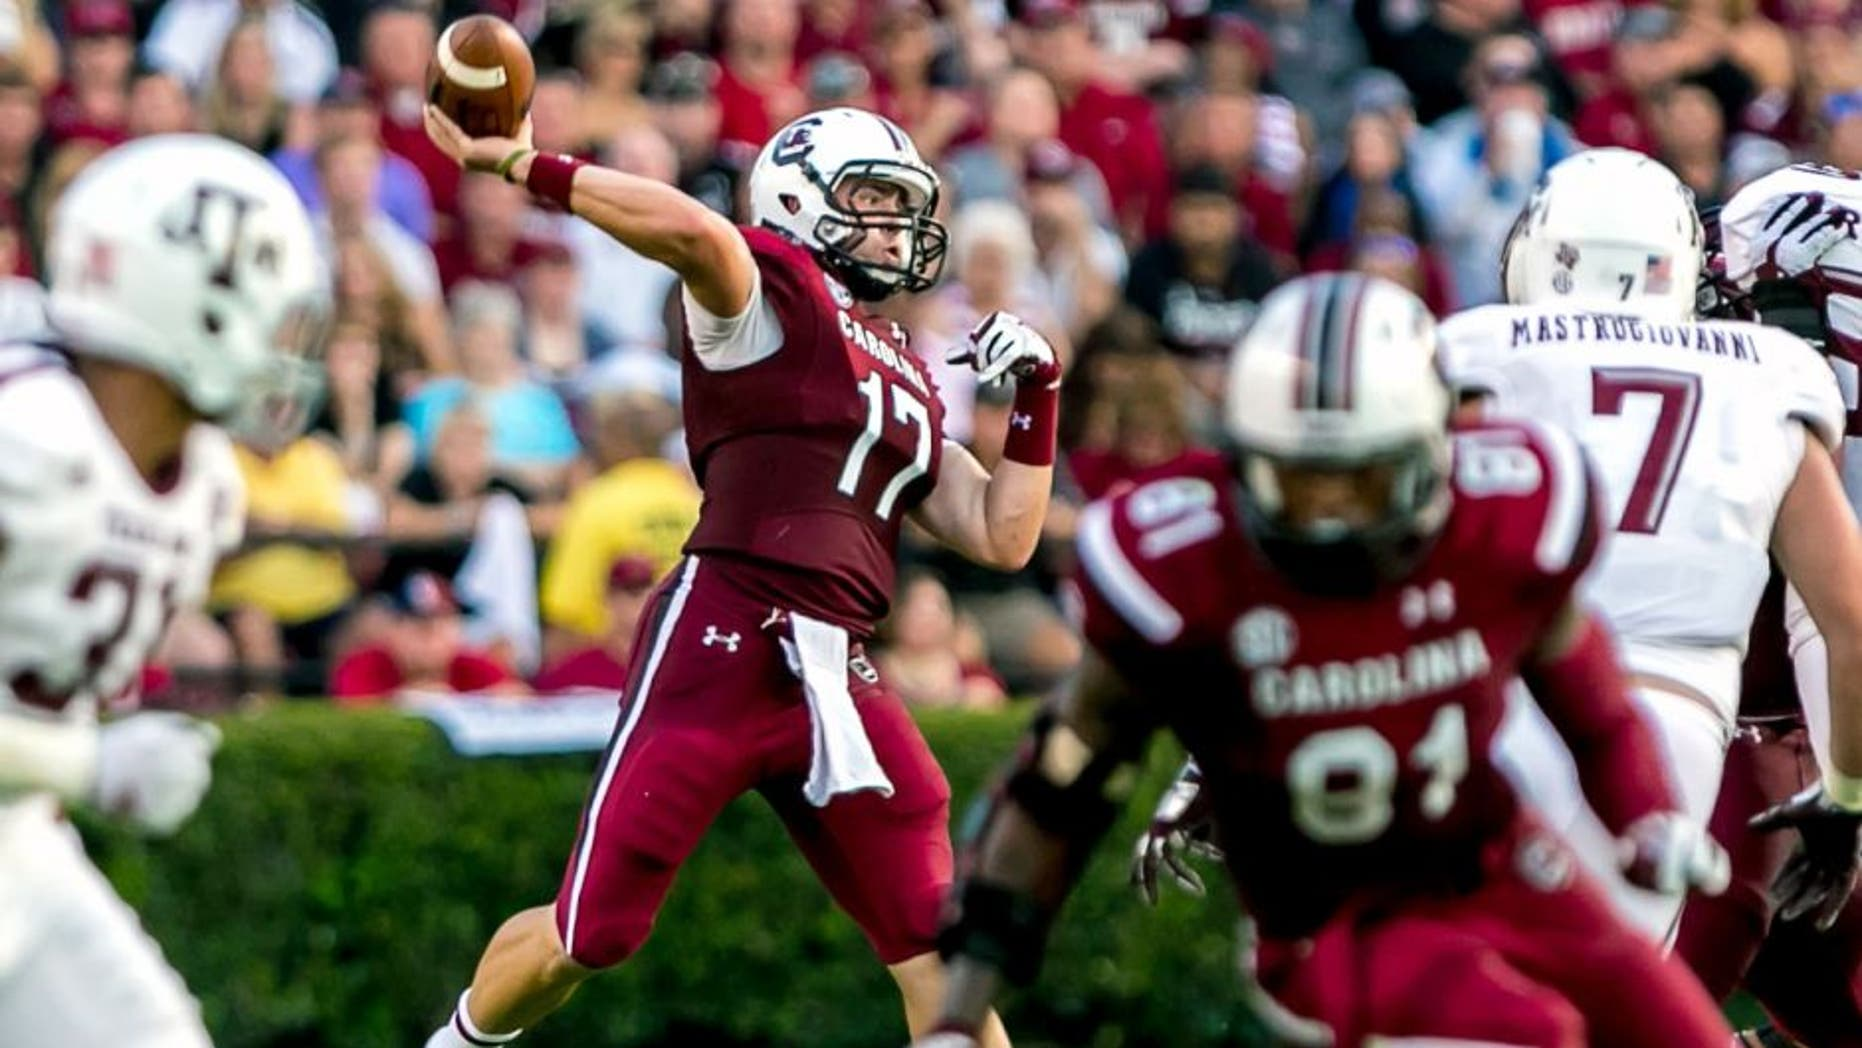 Aug 28, 2014; Columbia, SC, USA; South Carolina Gamecocks quarterback Dylan Thompson (17) passes against the Texas A&M Aggies in the second quarter at Williams-Brice Stadium. Mandatory Credit: Jeff Blake-USA TODAY Sports